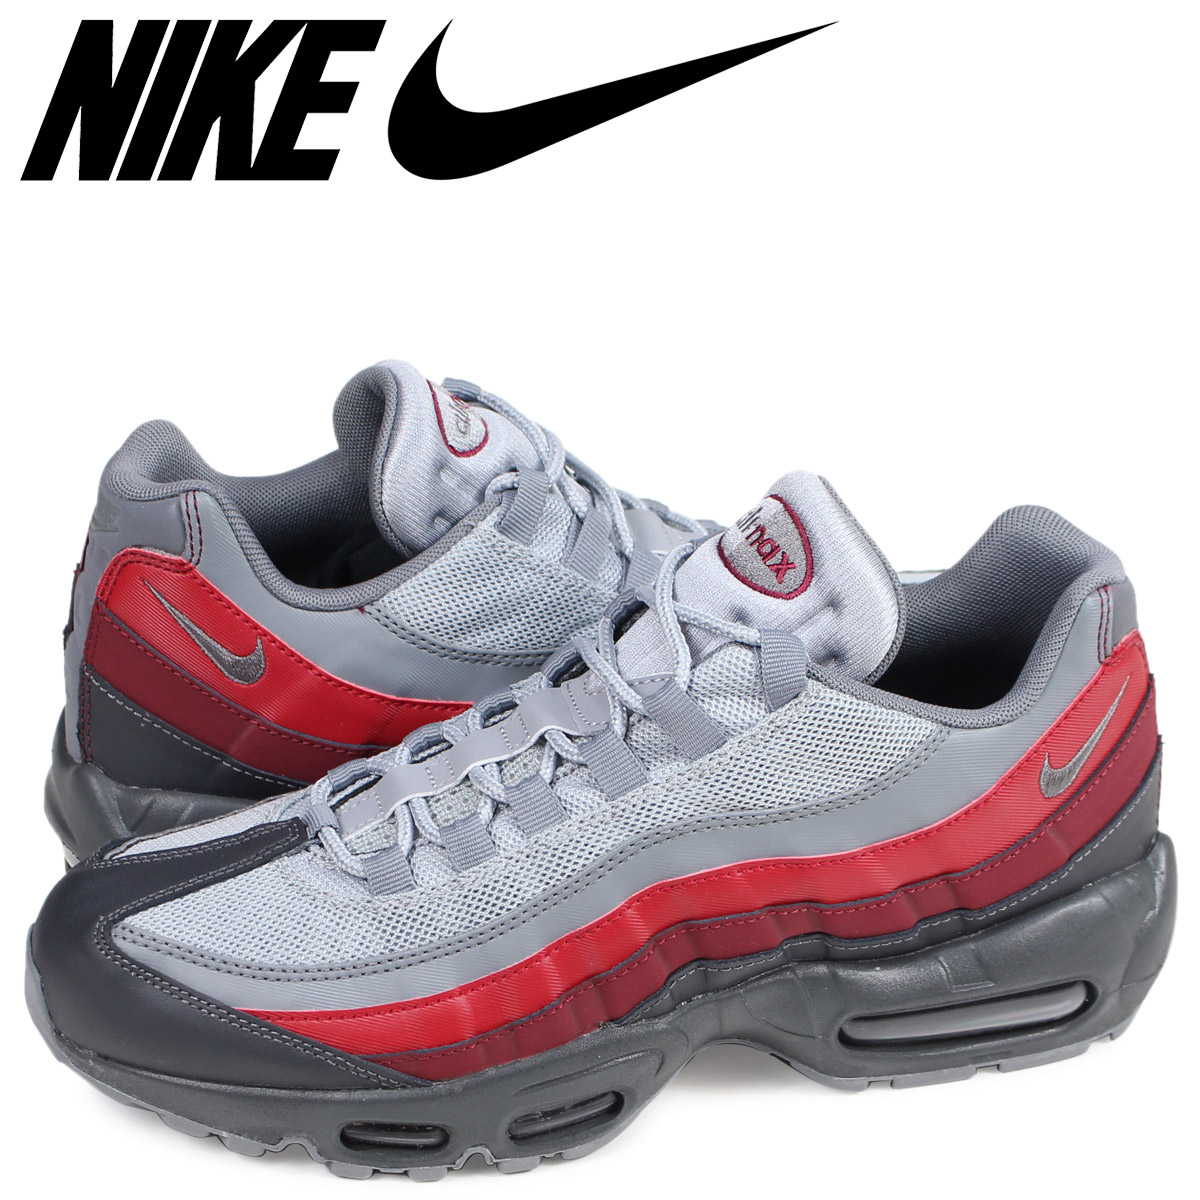 the best attitude e3804 230b8 Categories. « All Categories · Shoes · Men s Shoes · Sneakers · Nike NIKE  Air Max 95 essential sneakers AIR MAX 95 ESSENTIAL 749,766-025 men s gray